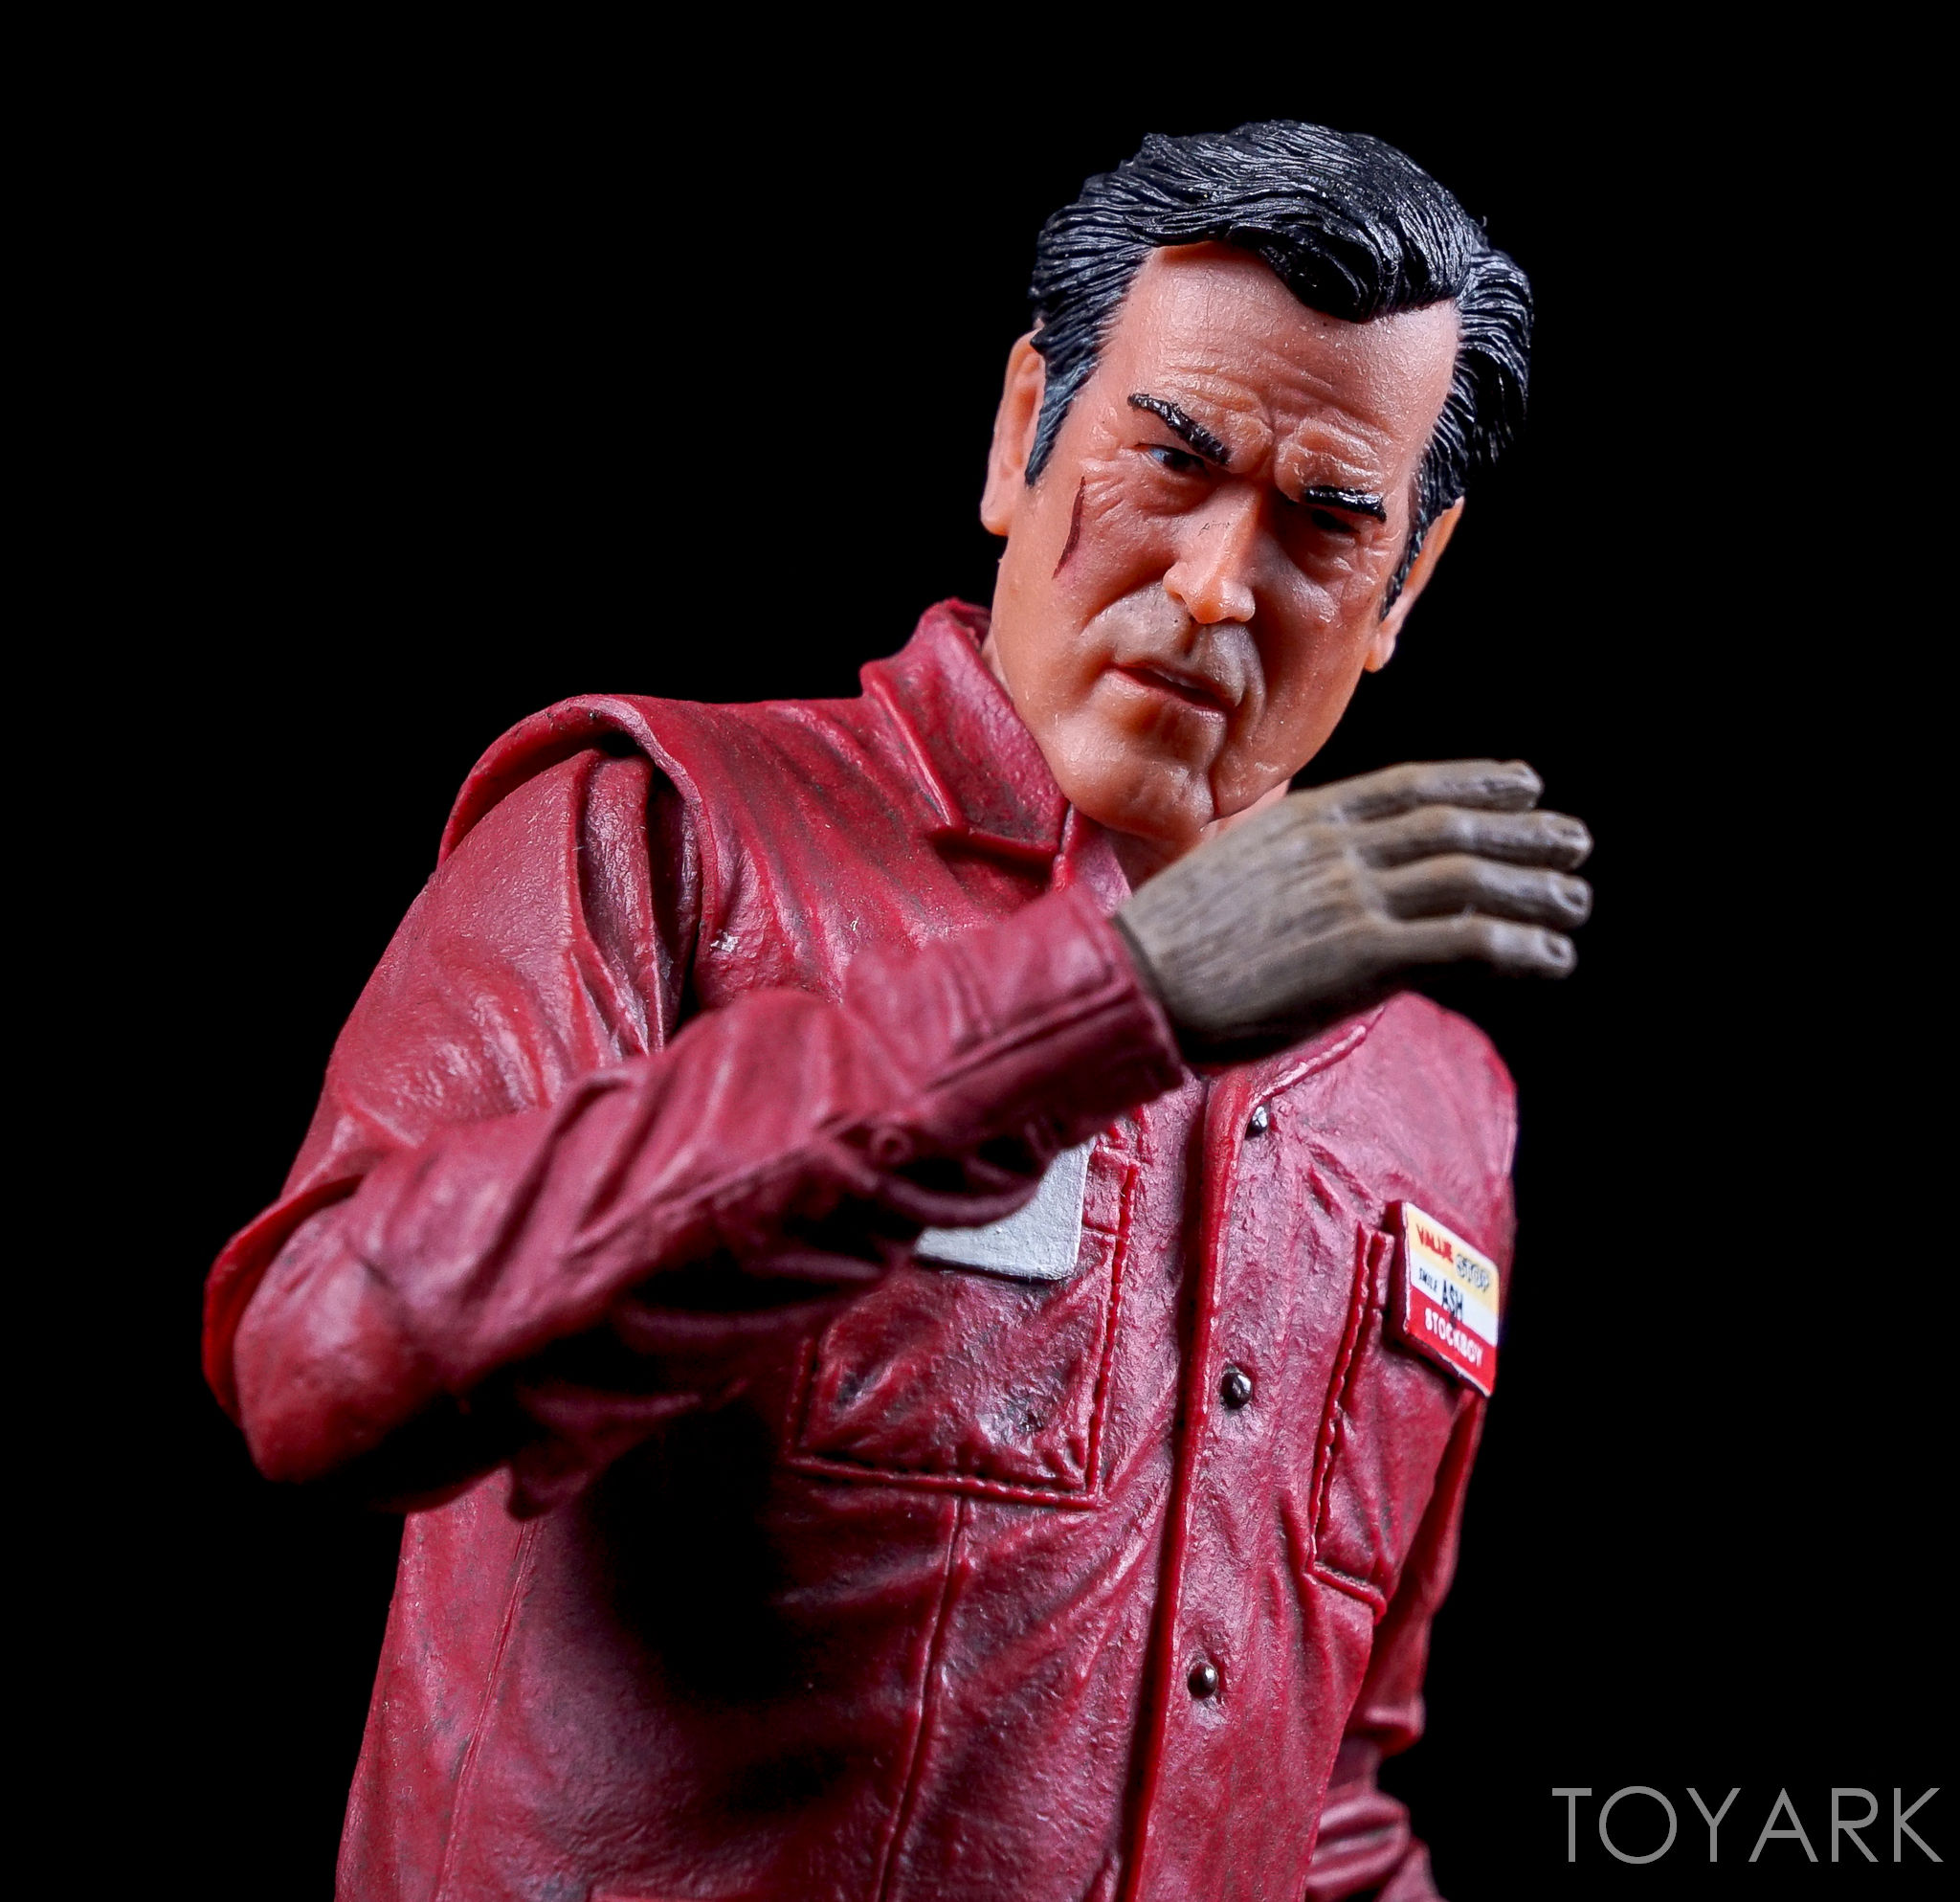 http://news.toyark.com/wp-content/uploads/sites/4/2016/09/Ash-vs-Evil-Dead-Series-1-NECA-046.jpg